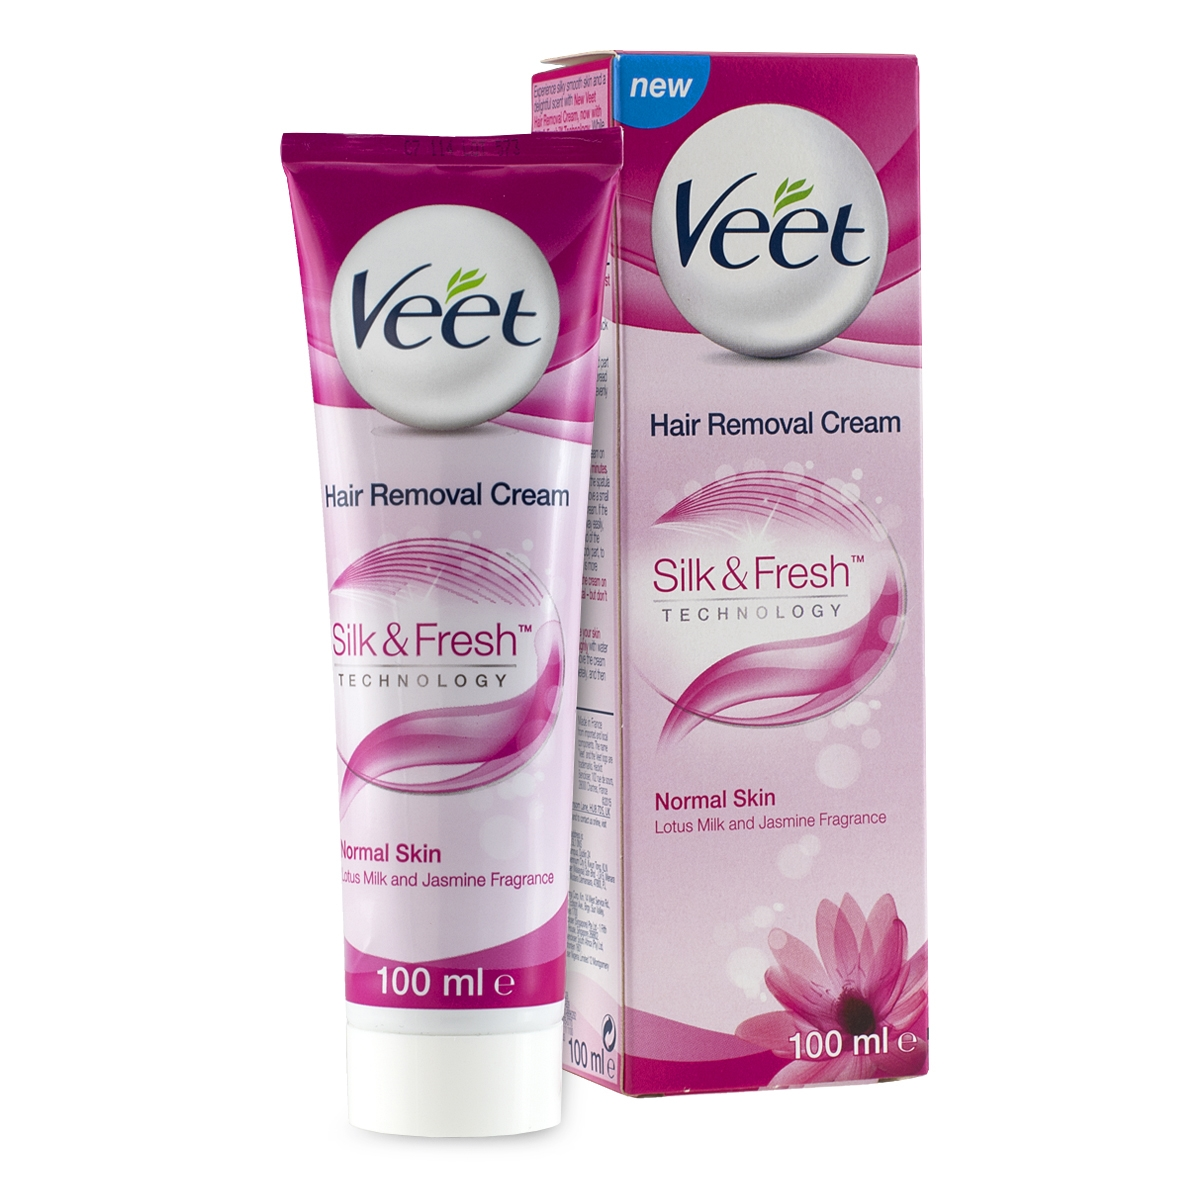 Veet Hair Removal Cream 100ml Lotus Milk Jasmine Fragrance